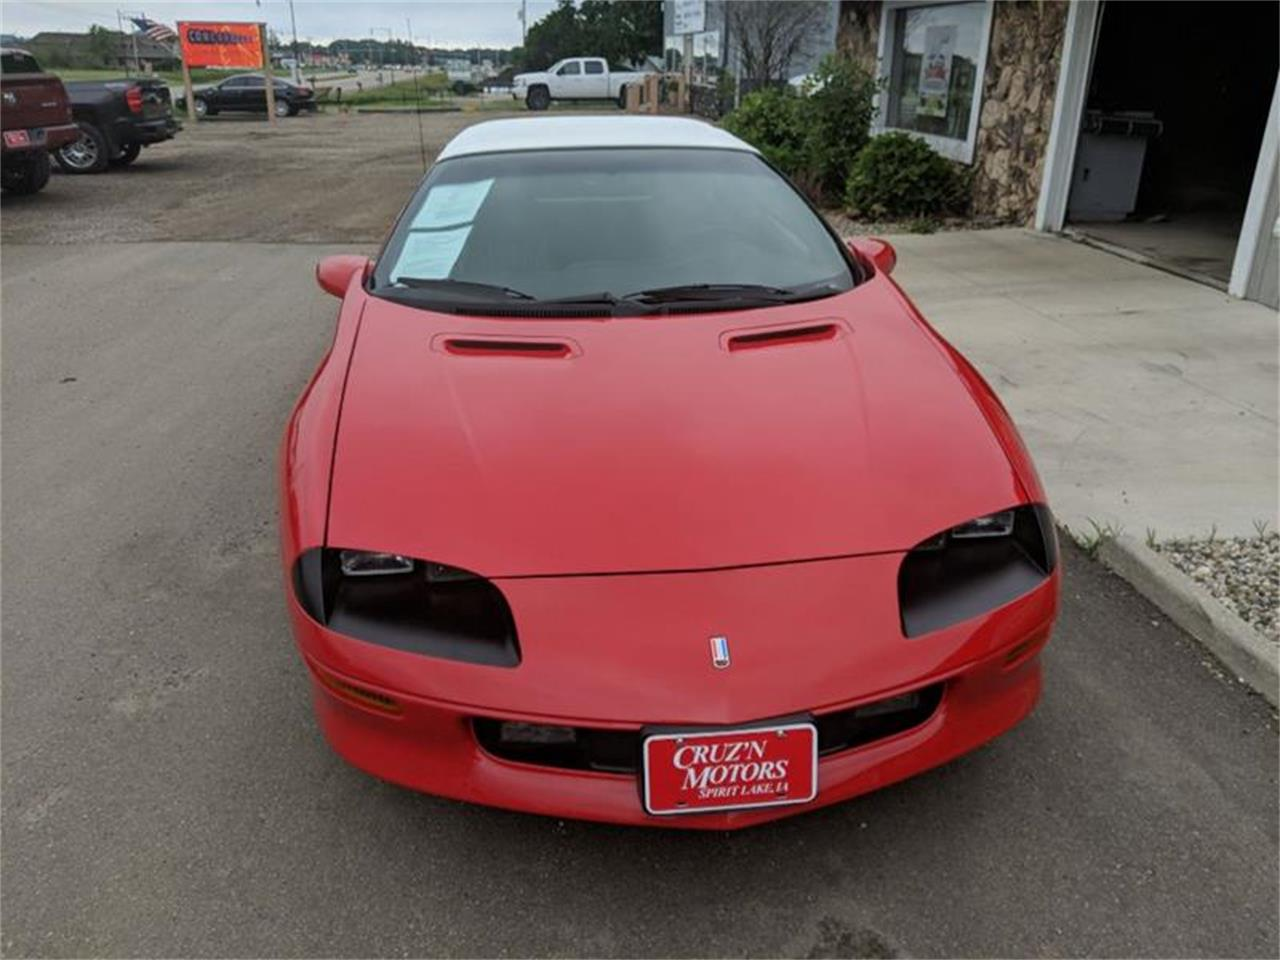 1997 Chevrolet Camaro (CC-1250554) for sale in Spirit Lake, Iowa